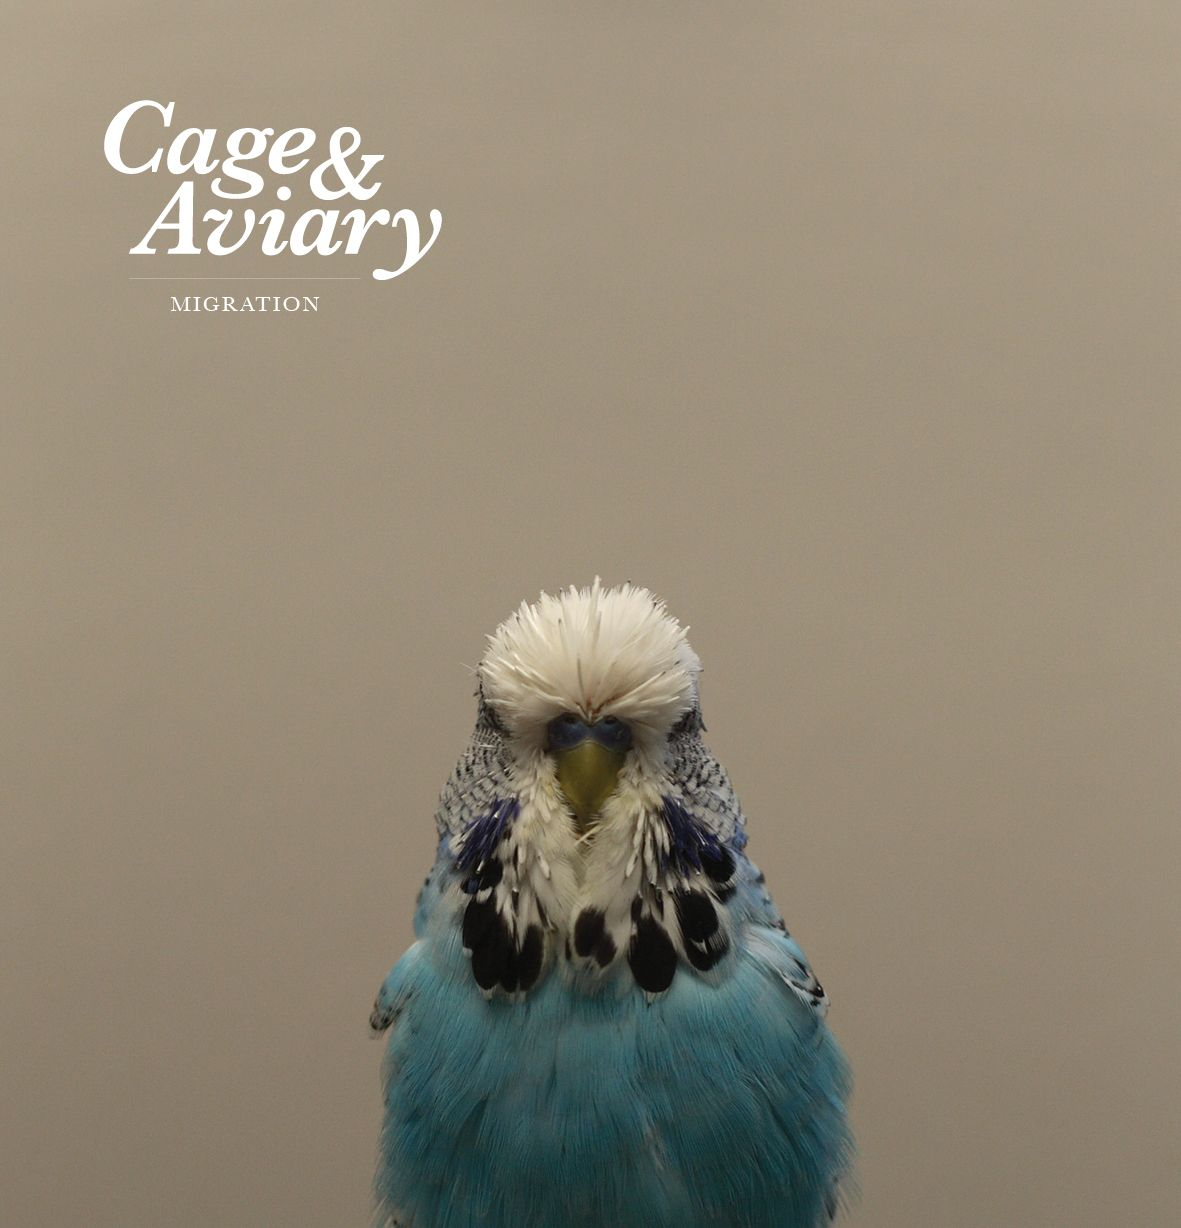 Cage & Aviary Migration Album Review Budgies, Cute